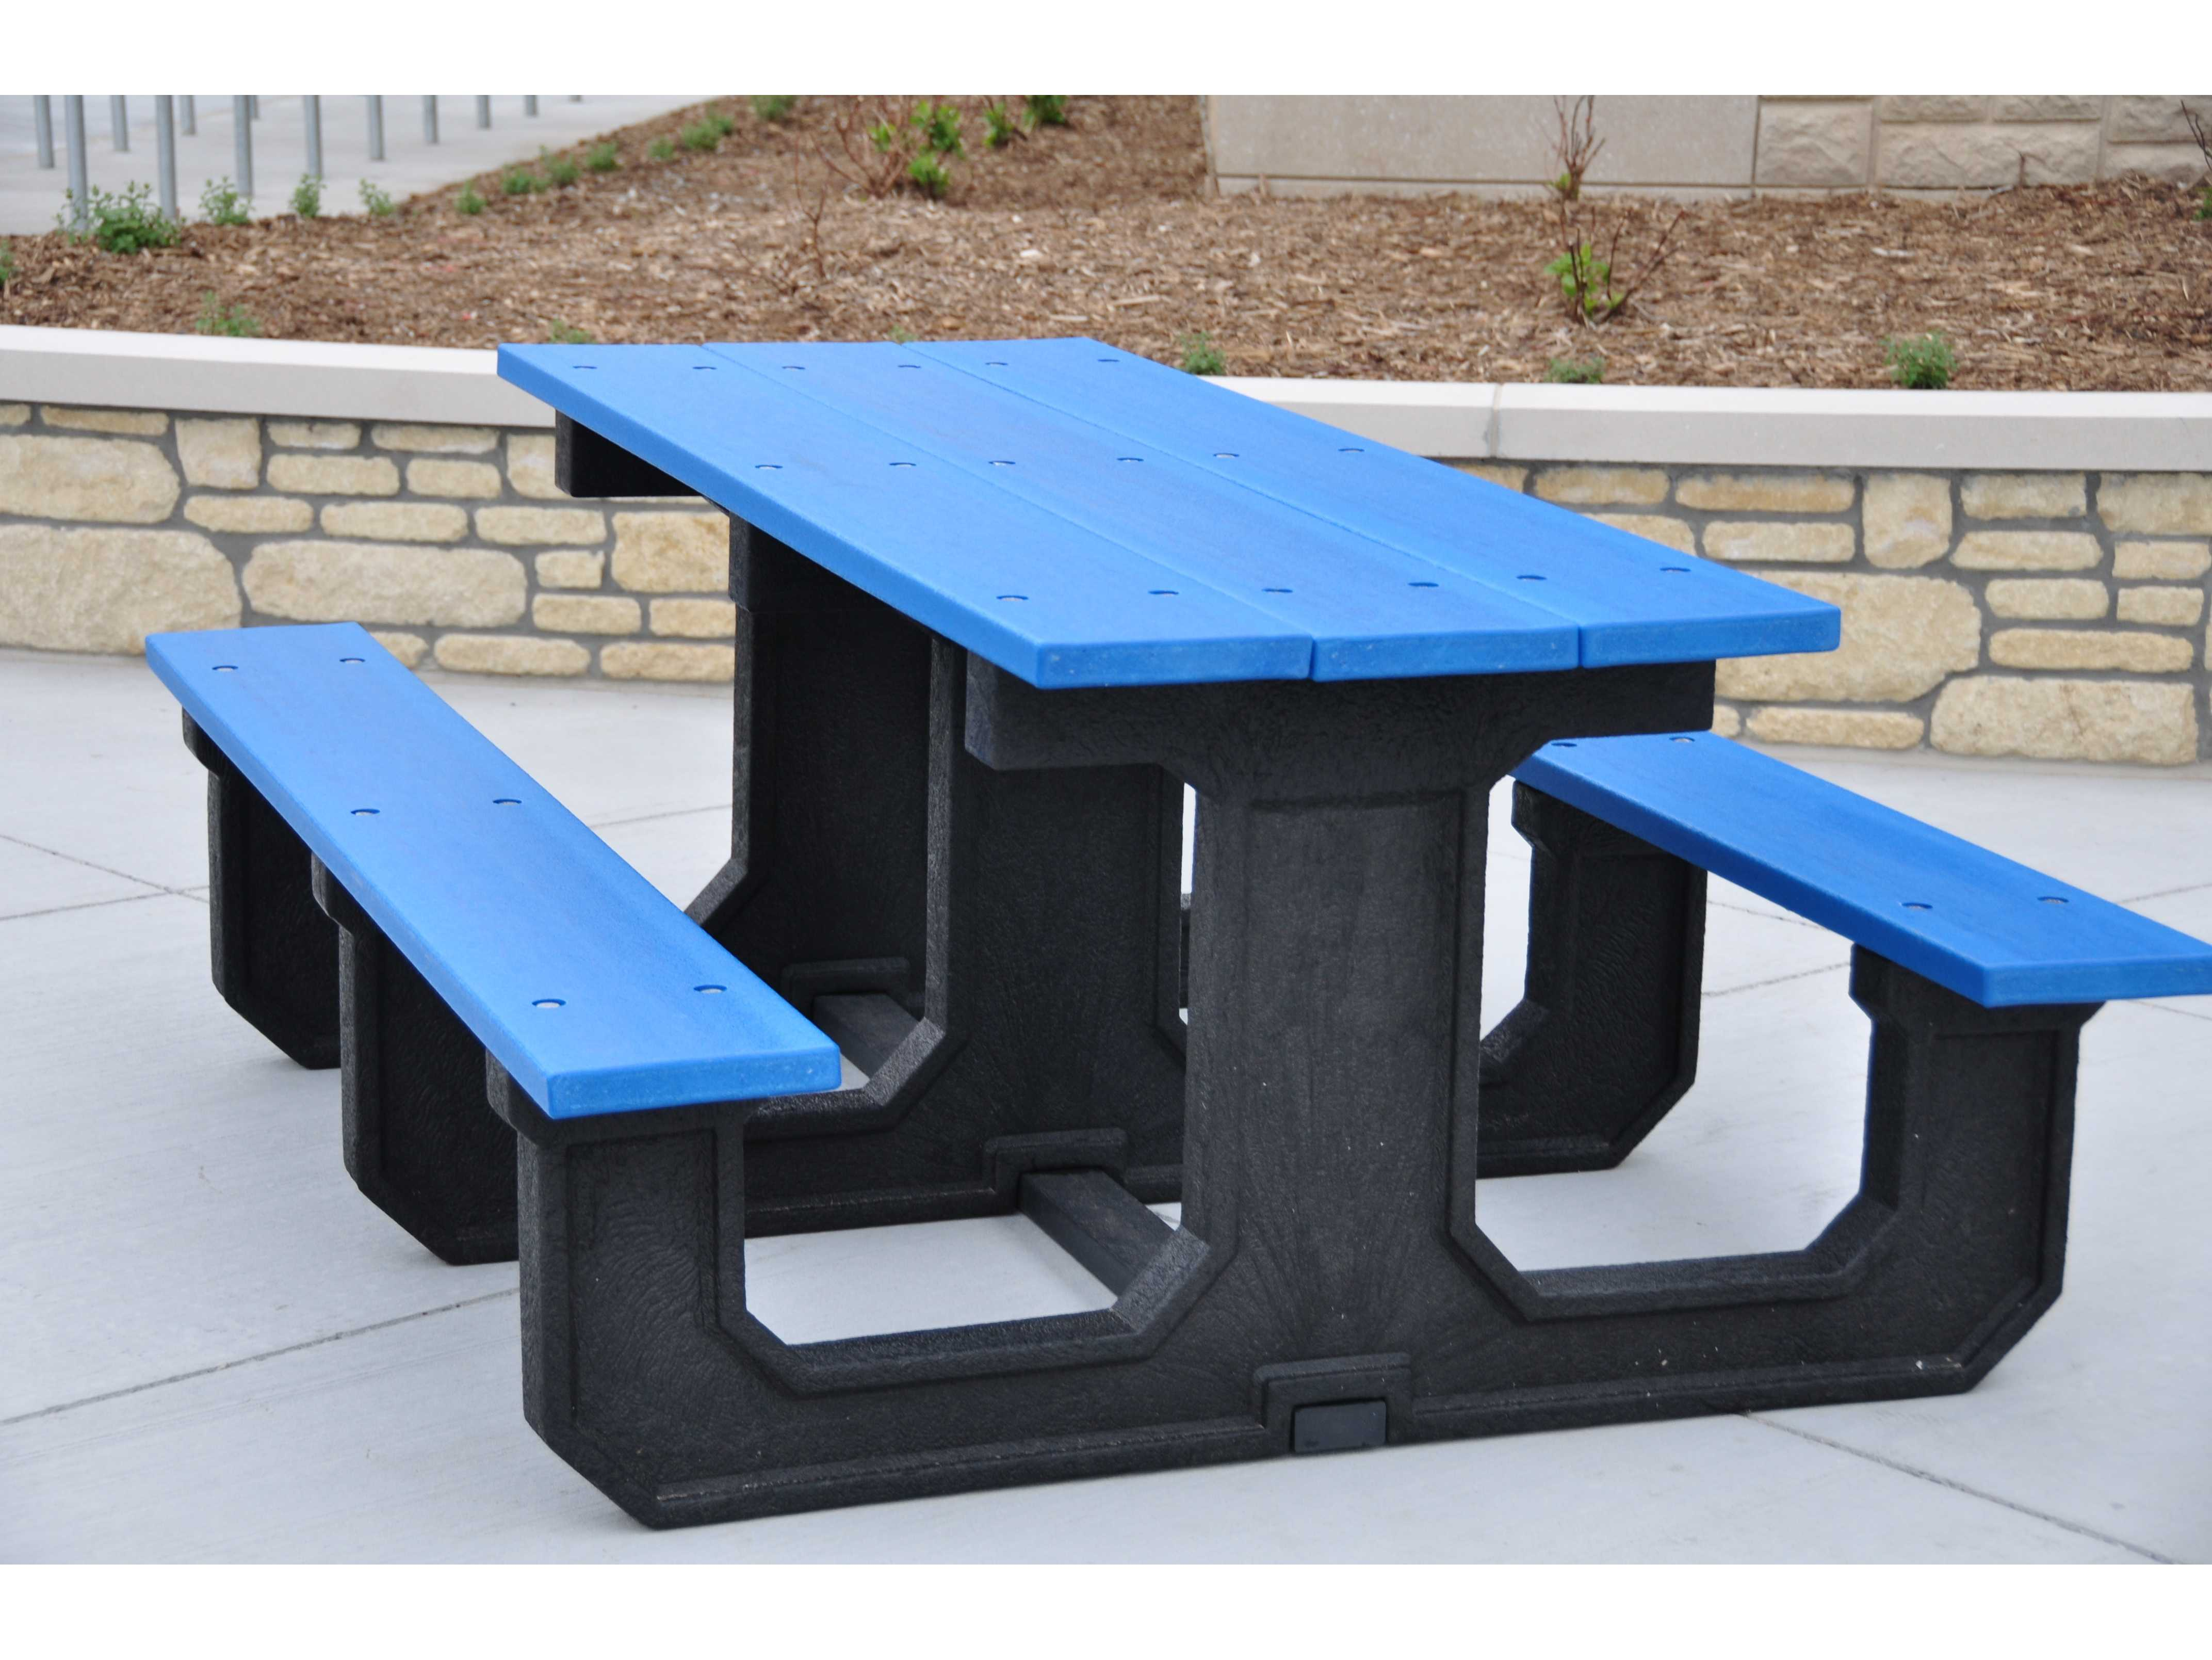 Frog Furnishings Park Place Ada Recycled Plastic 6 Ft 90